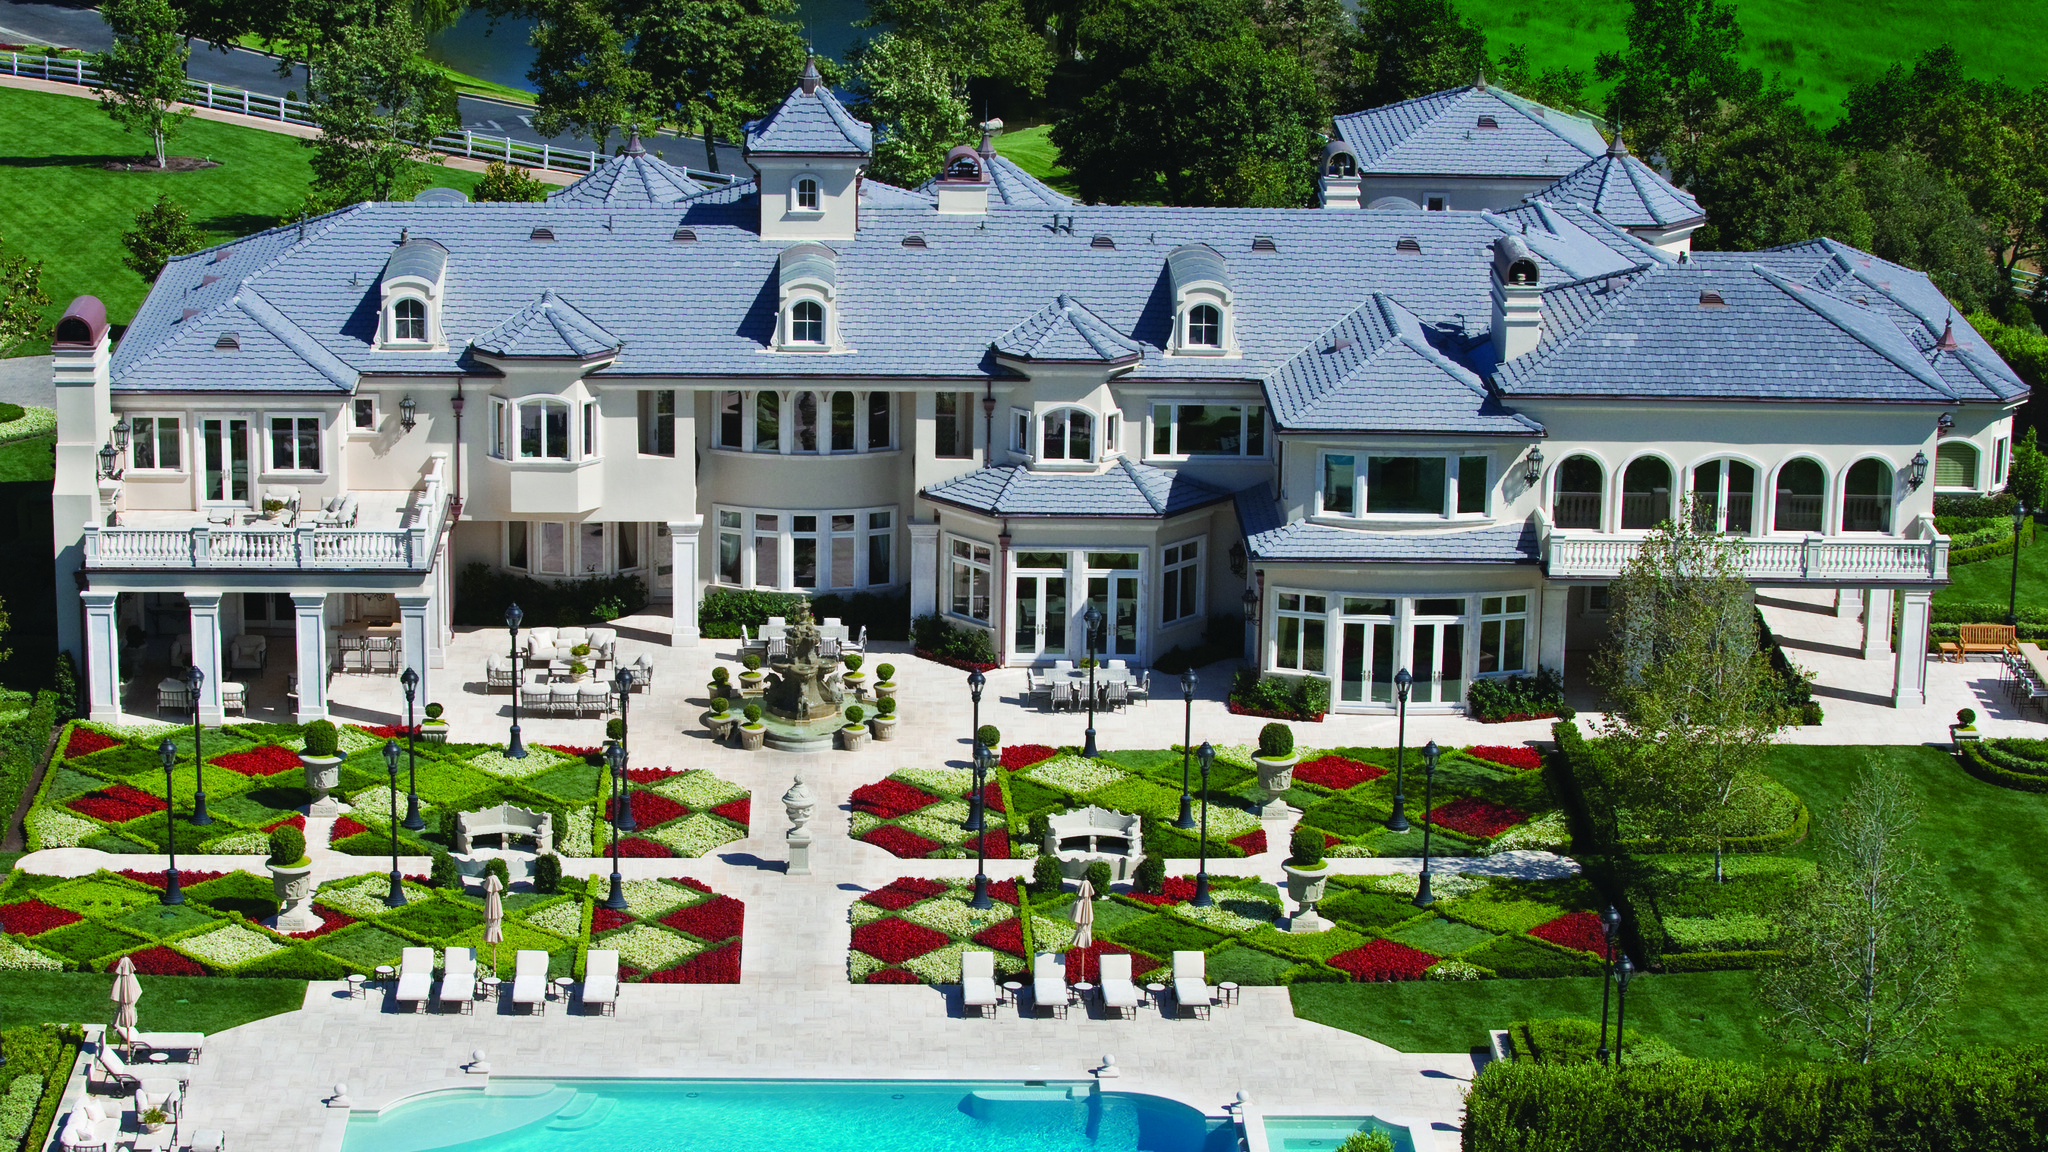 Home of the day a french formal estate in thousand oaks for The tuxedo house